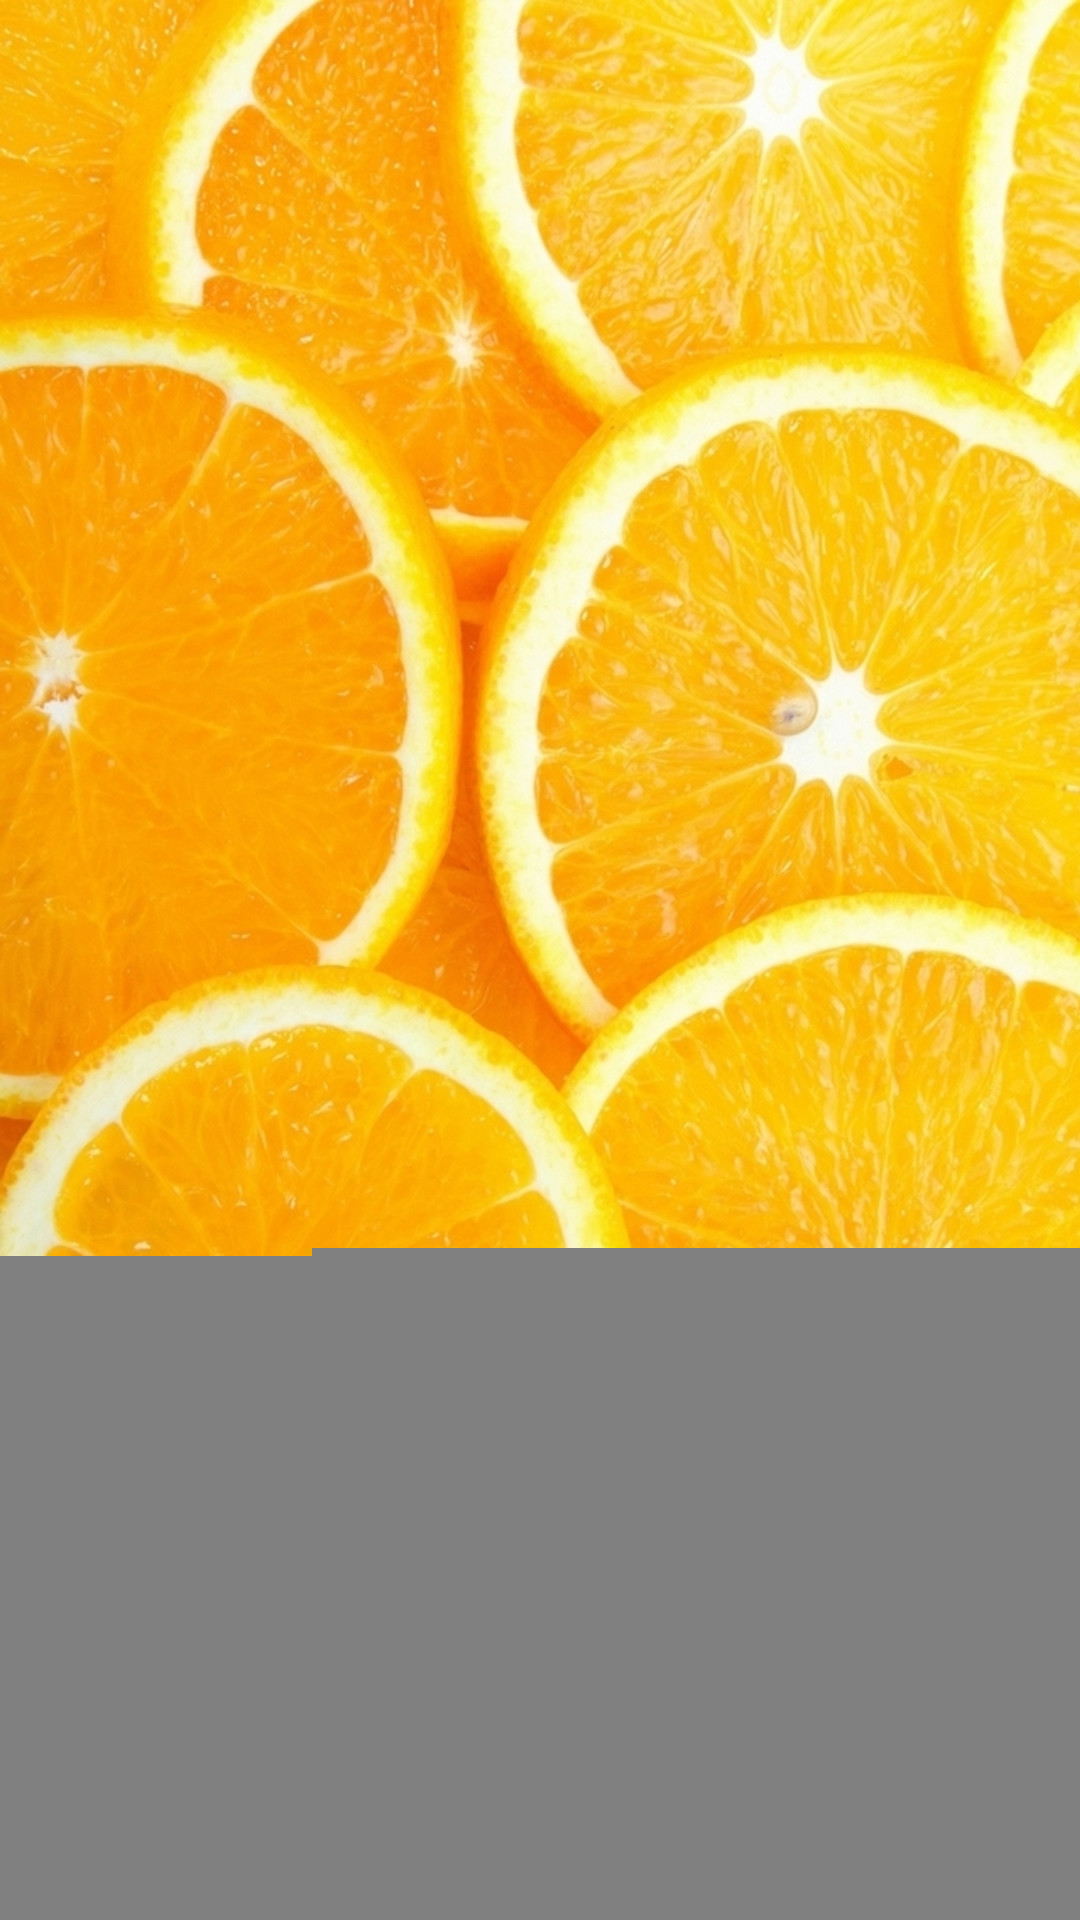 Fruit Orange Slice Overlap Background iPhone 8 wallpaper